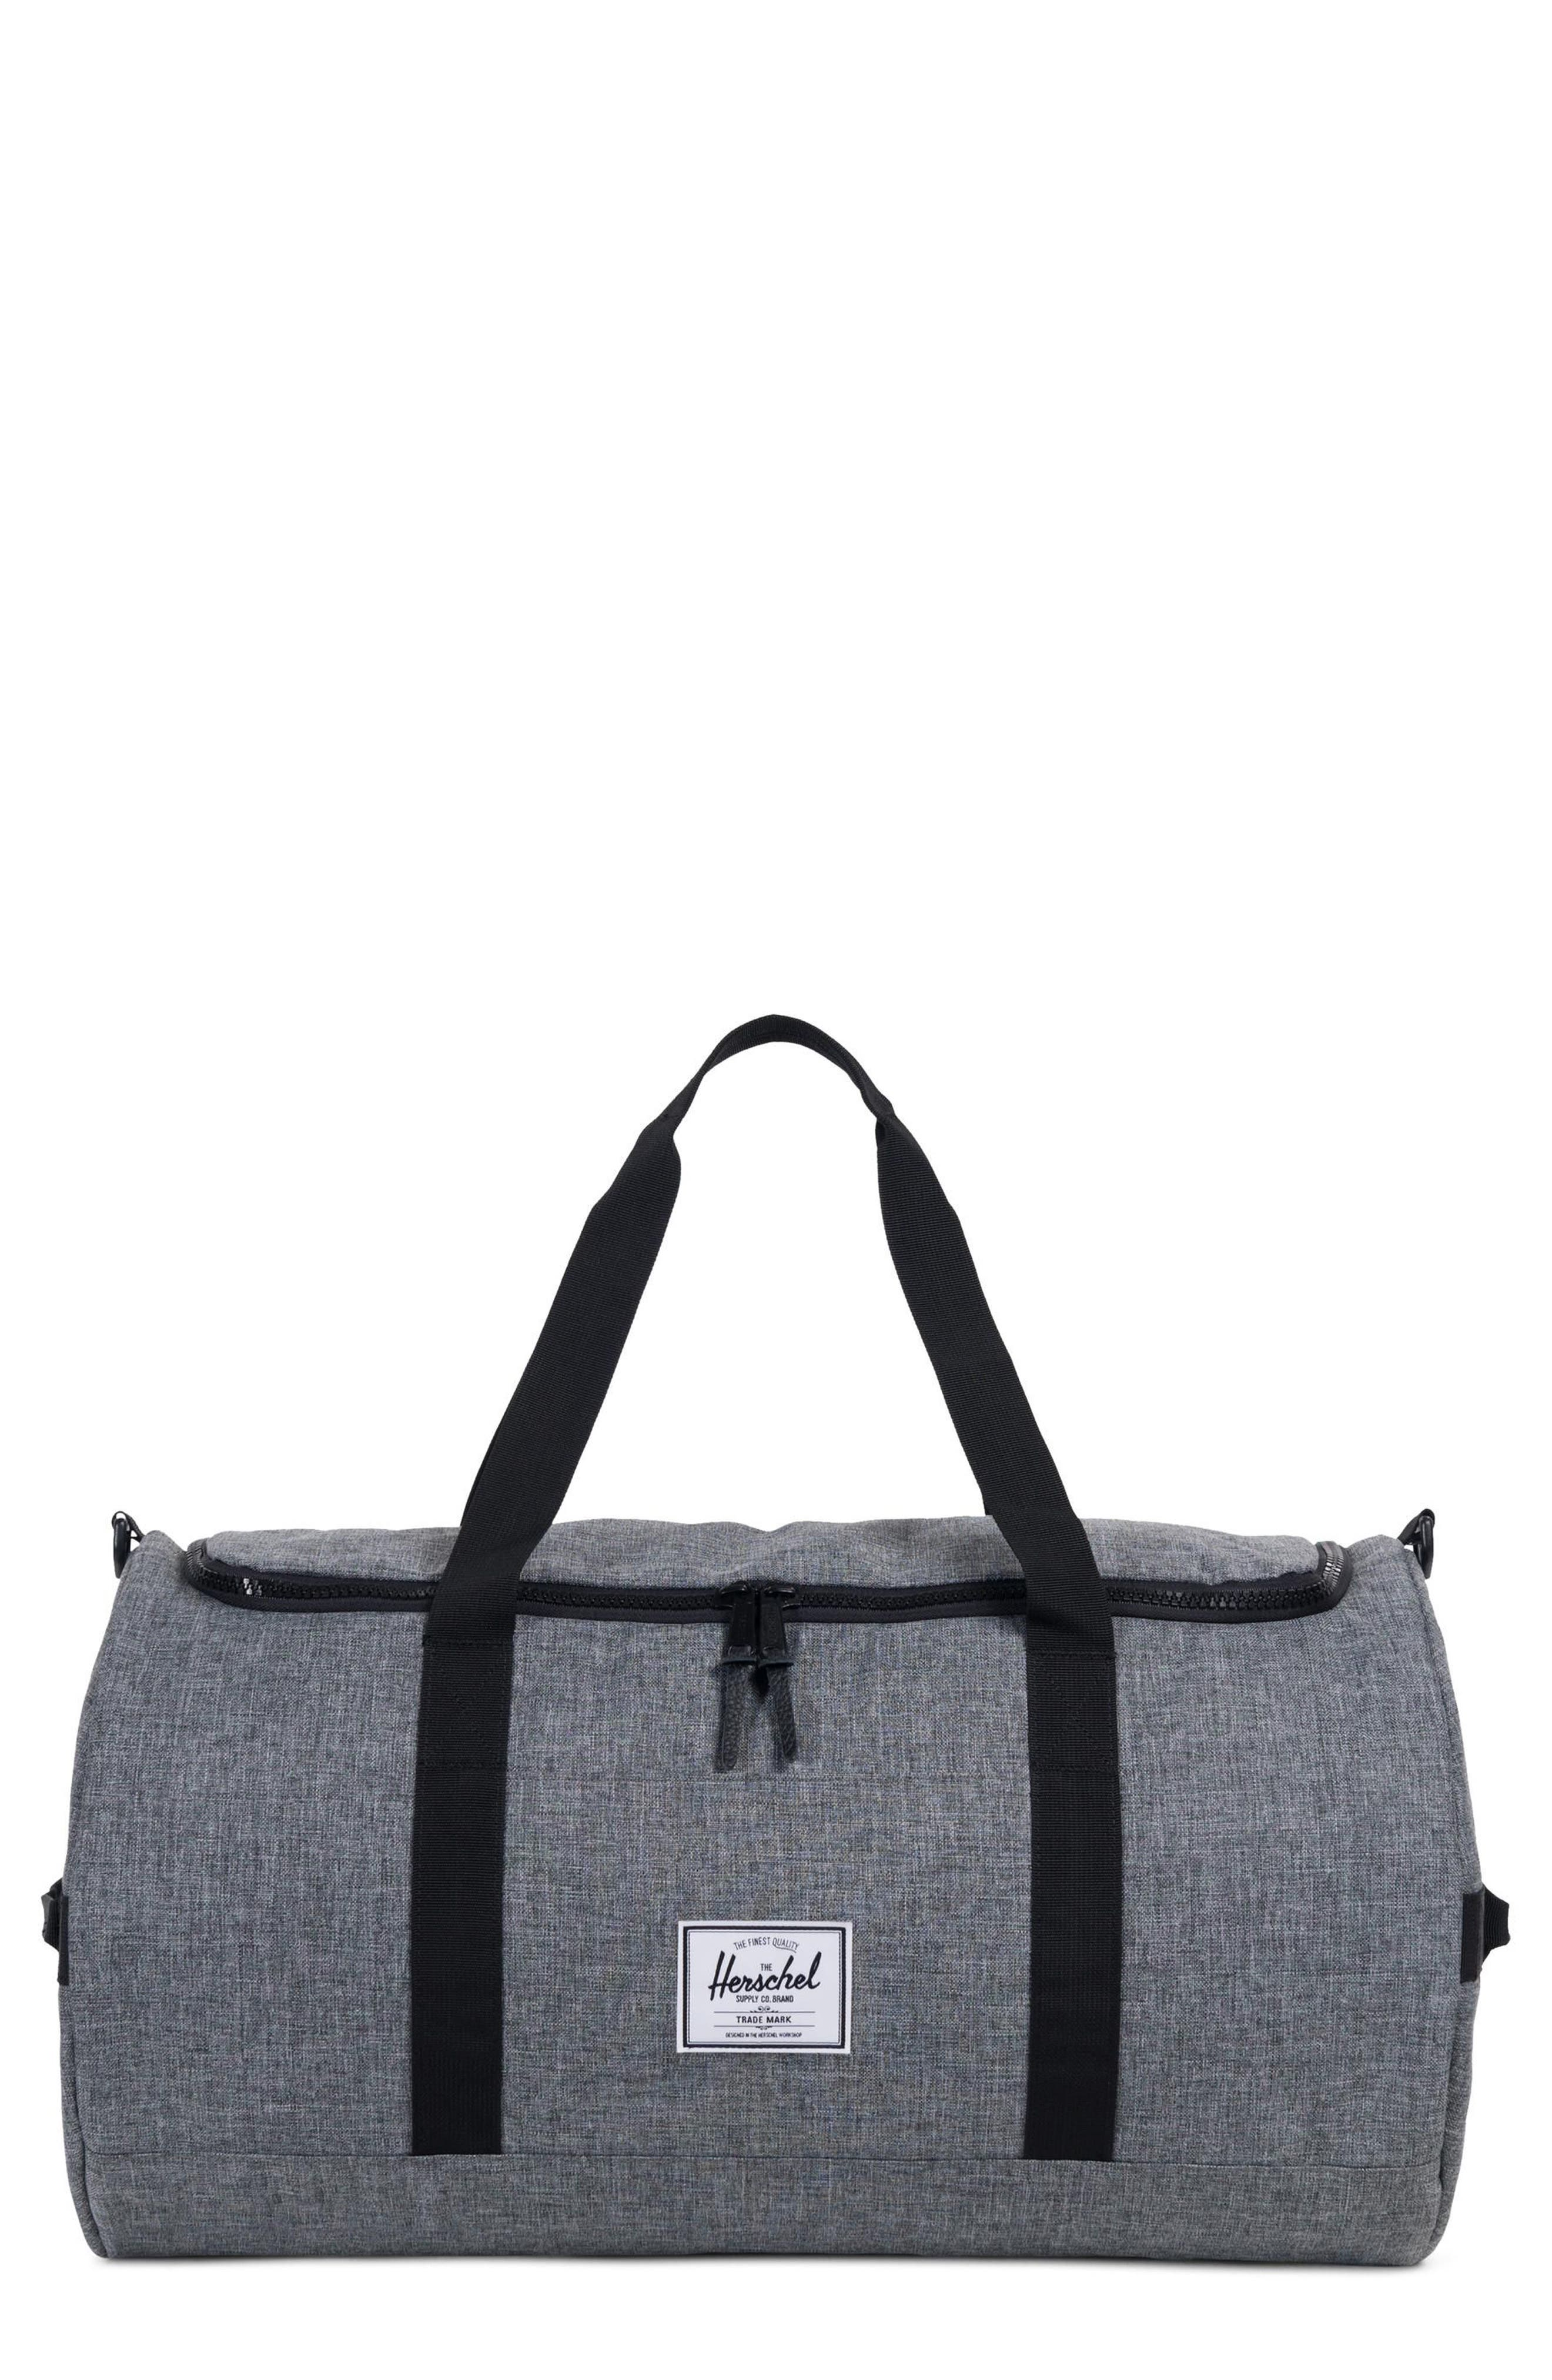 SUTTON DUFFEL BAG - GREY